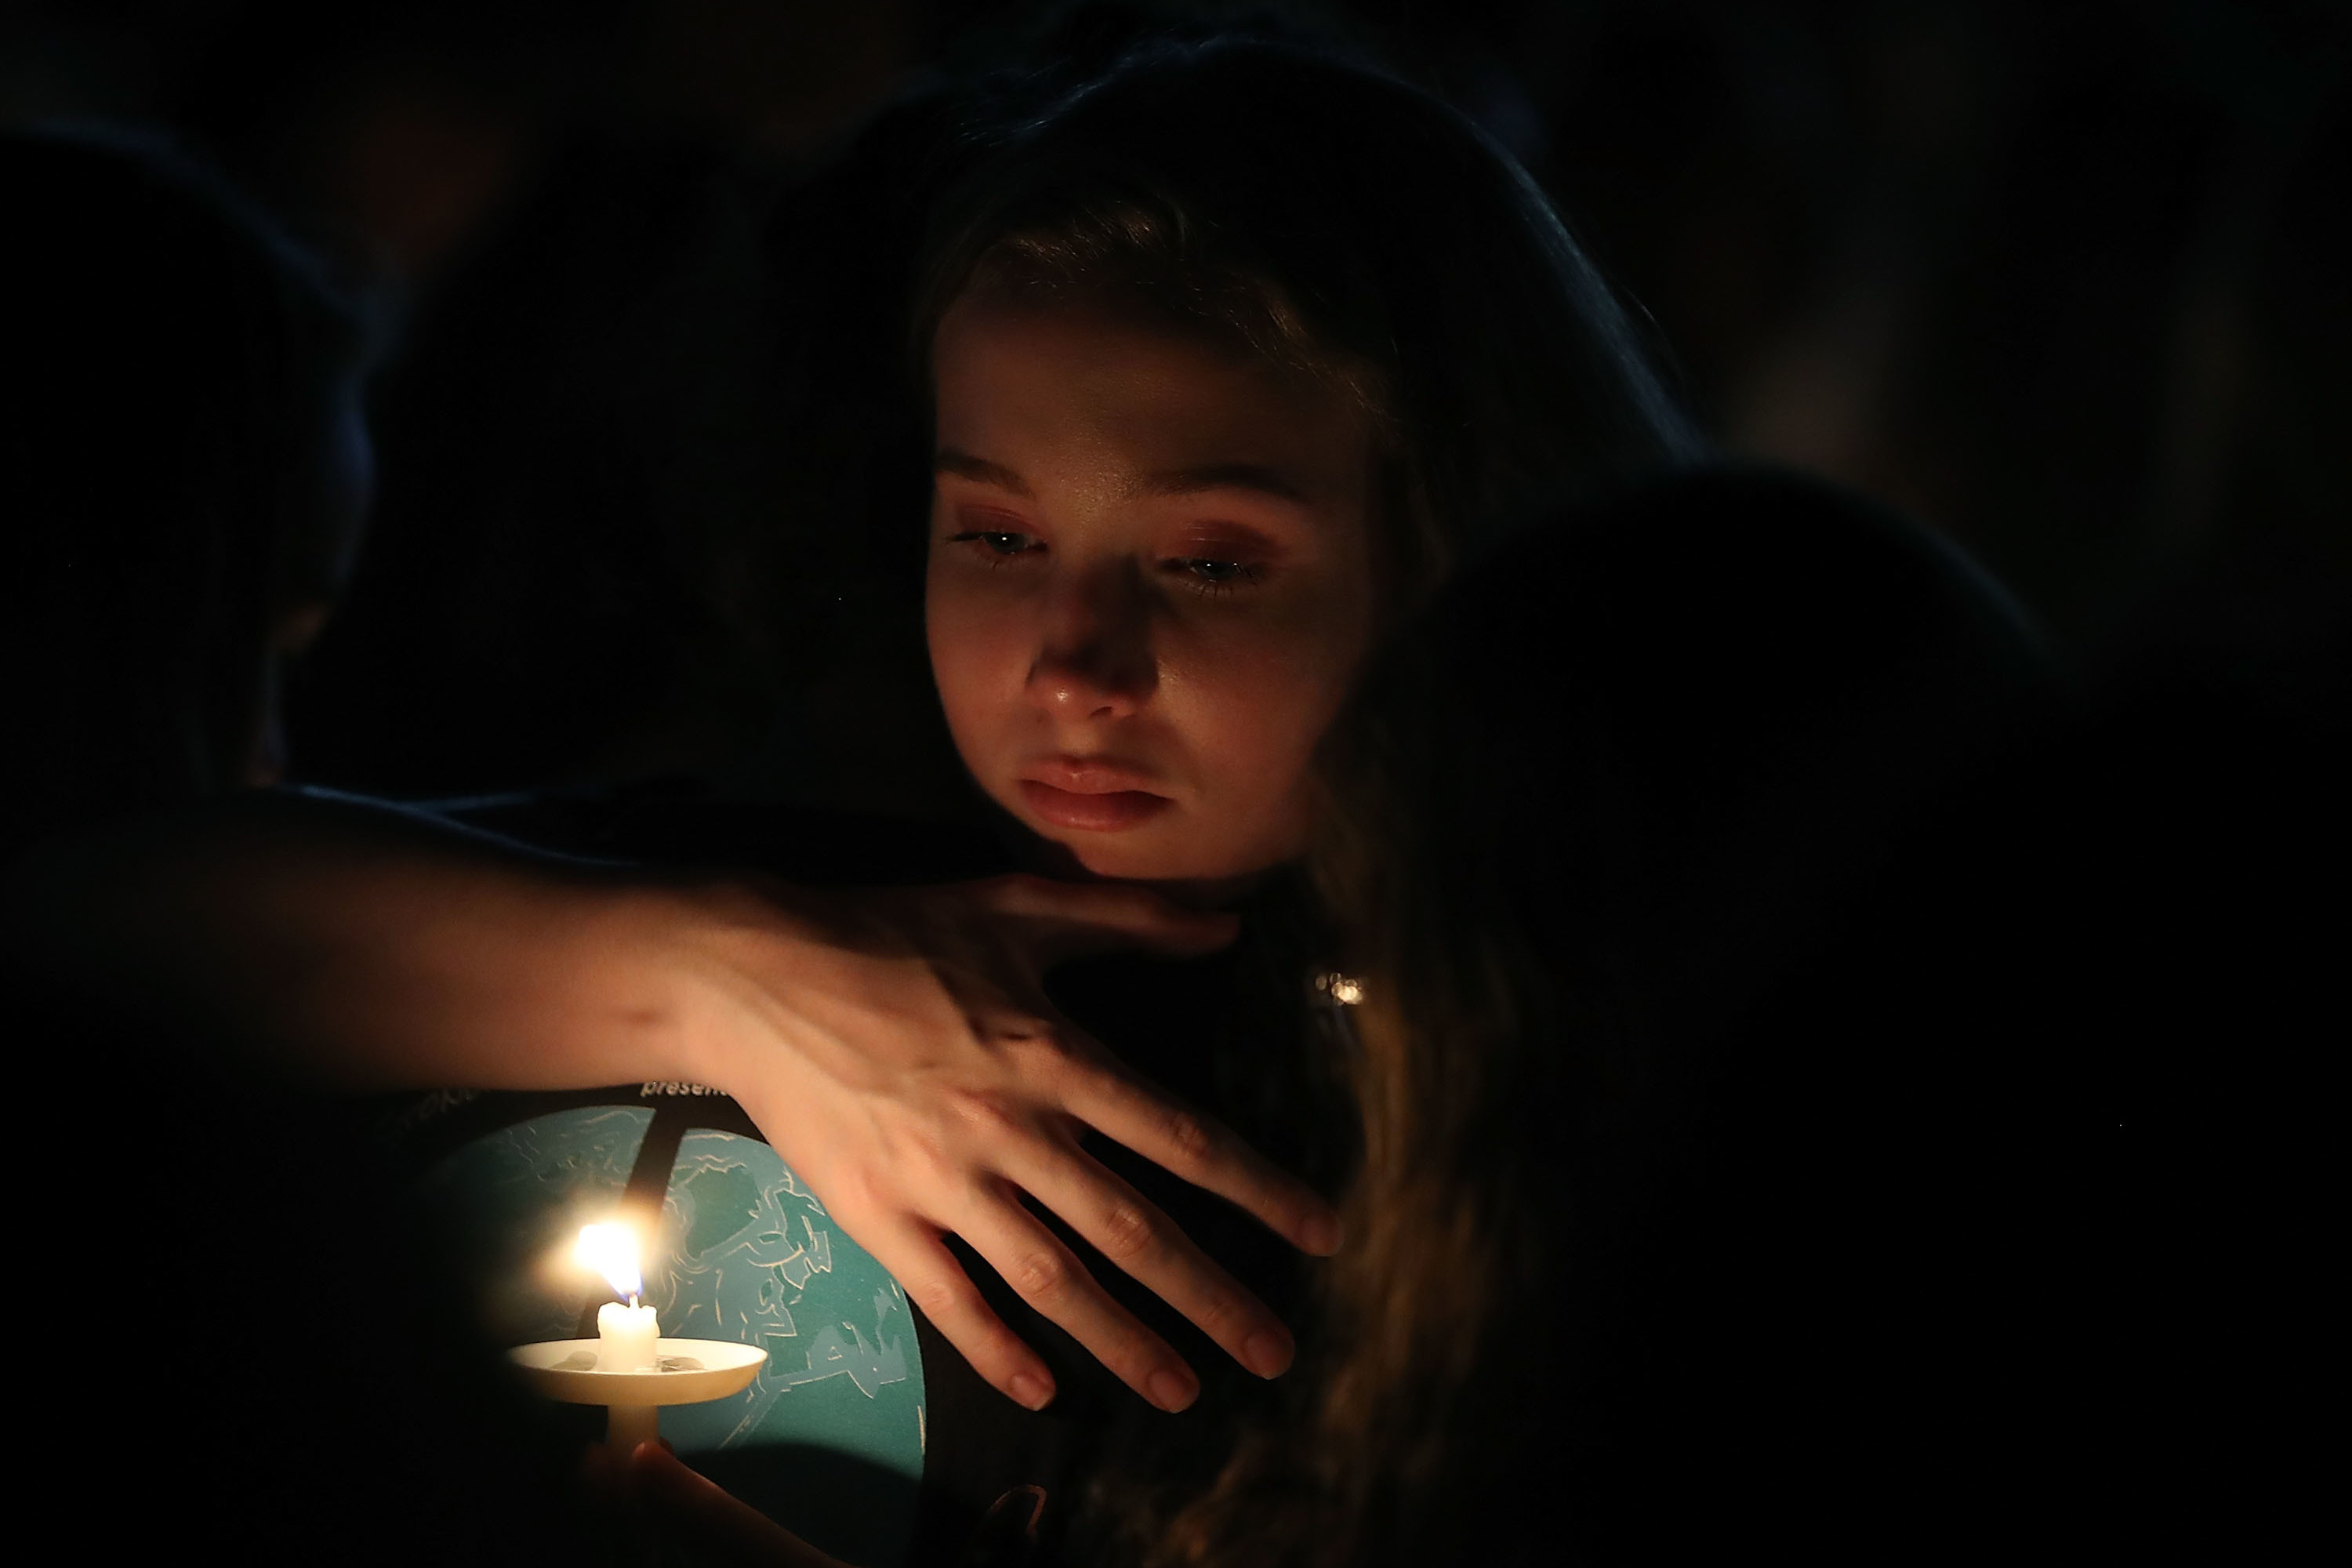 Community Mourns At Candlelight Vigil After Deadly School Shooting The Two Way Npr See what marcus vigil (marcuslosvigil121678) has discovered on pinterest, the world's biggest more ideas from marcus vigil. community mourns at candlelight vigil after deadly school shooting the two way npr